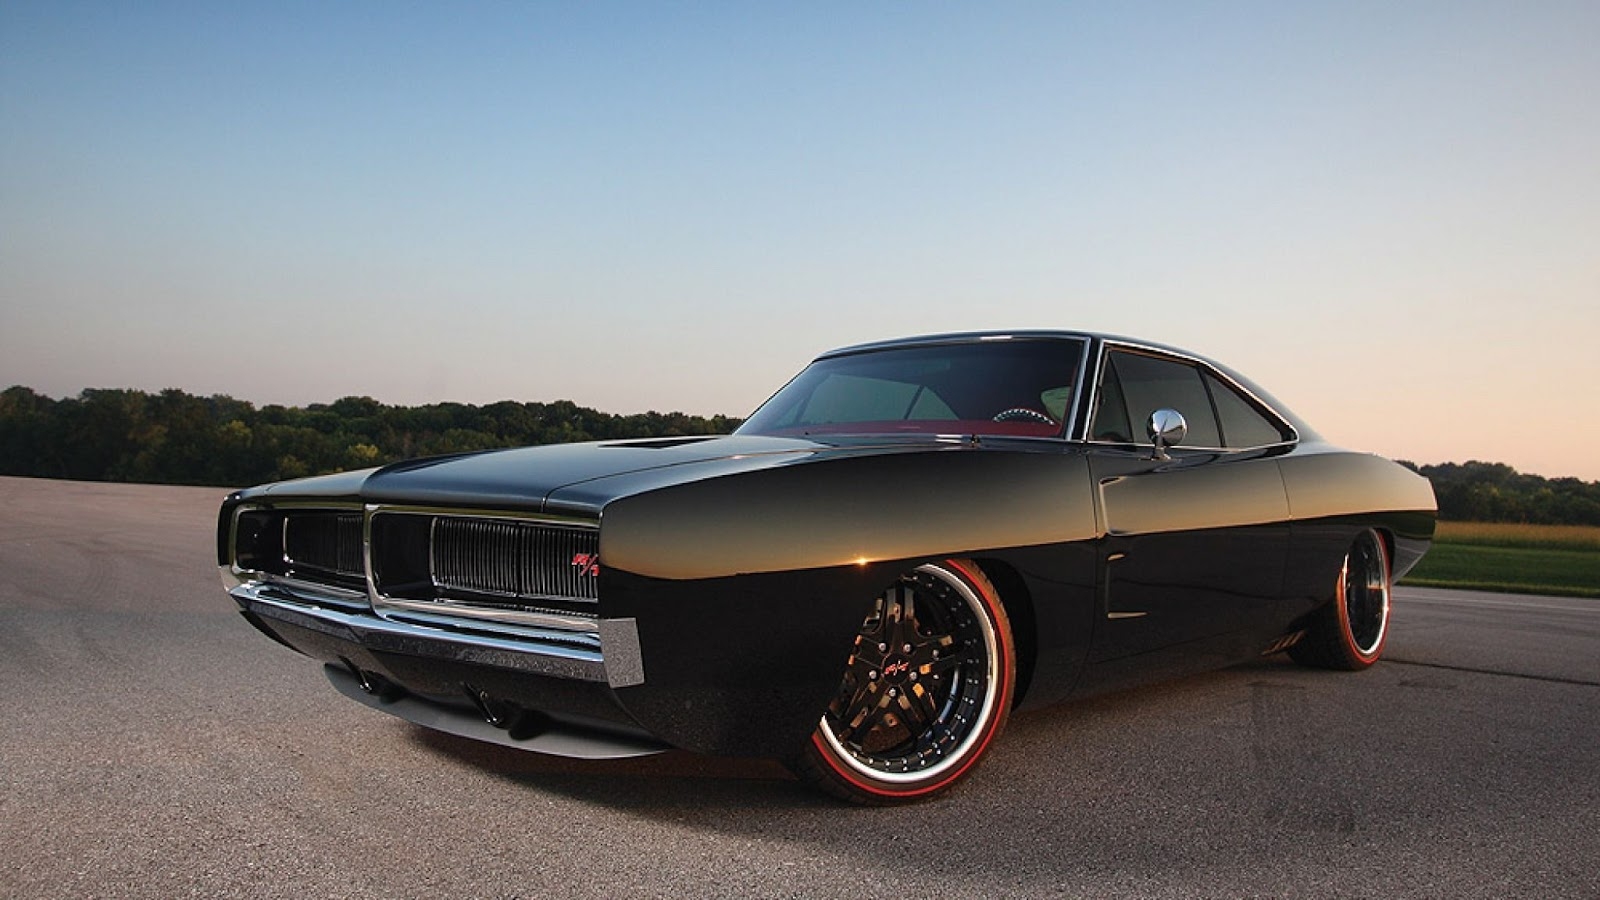 Mobil dodge charger 1970